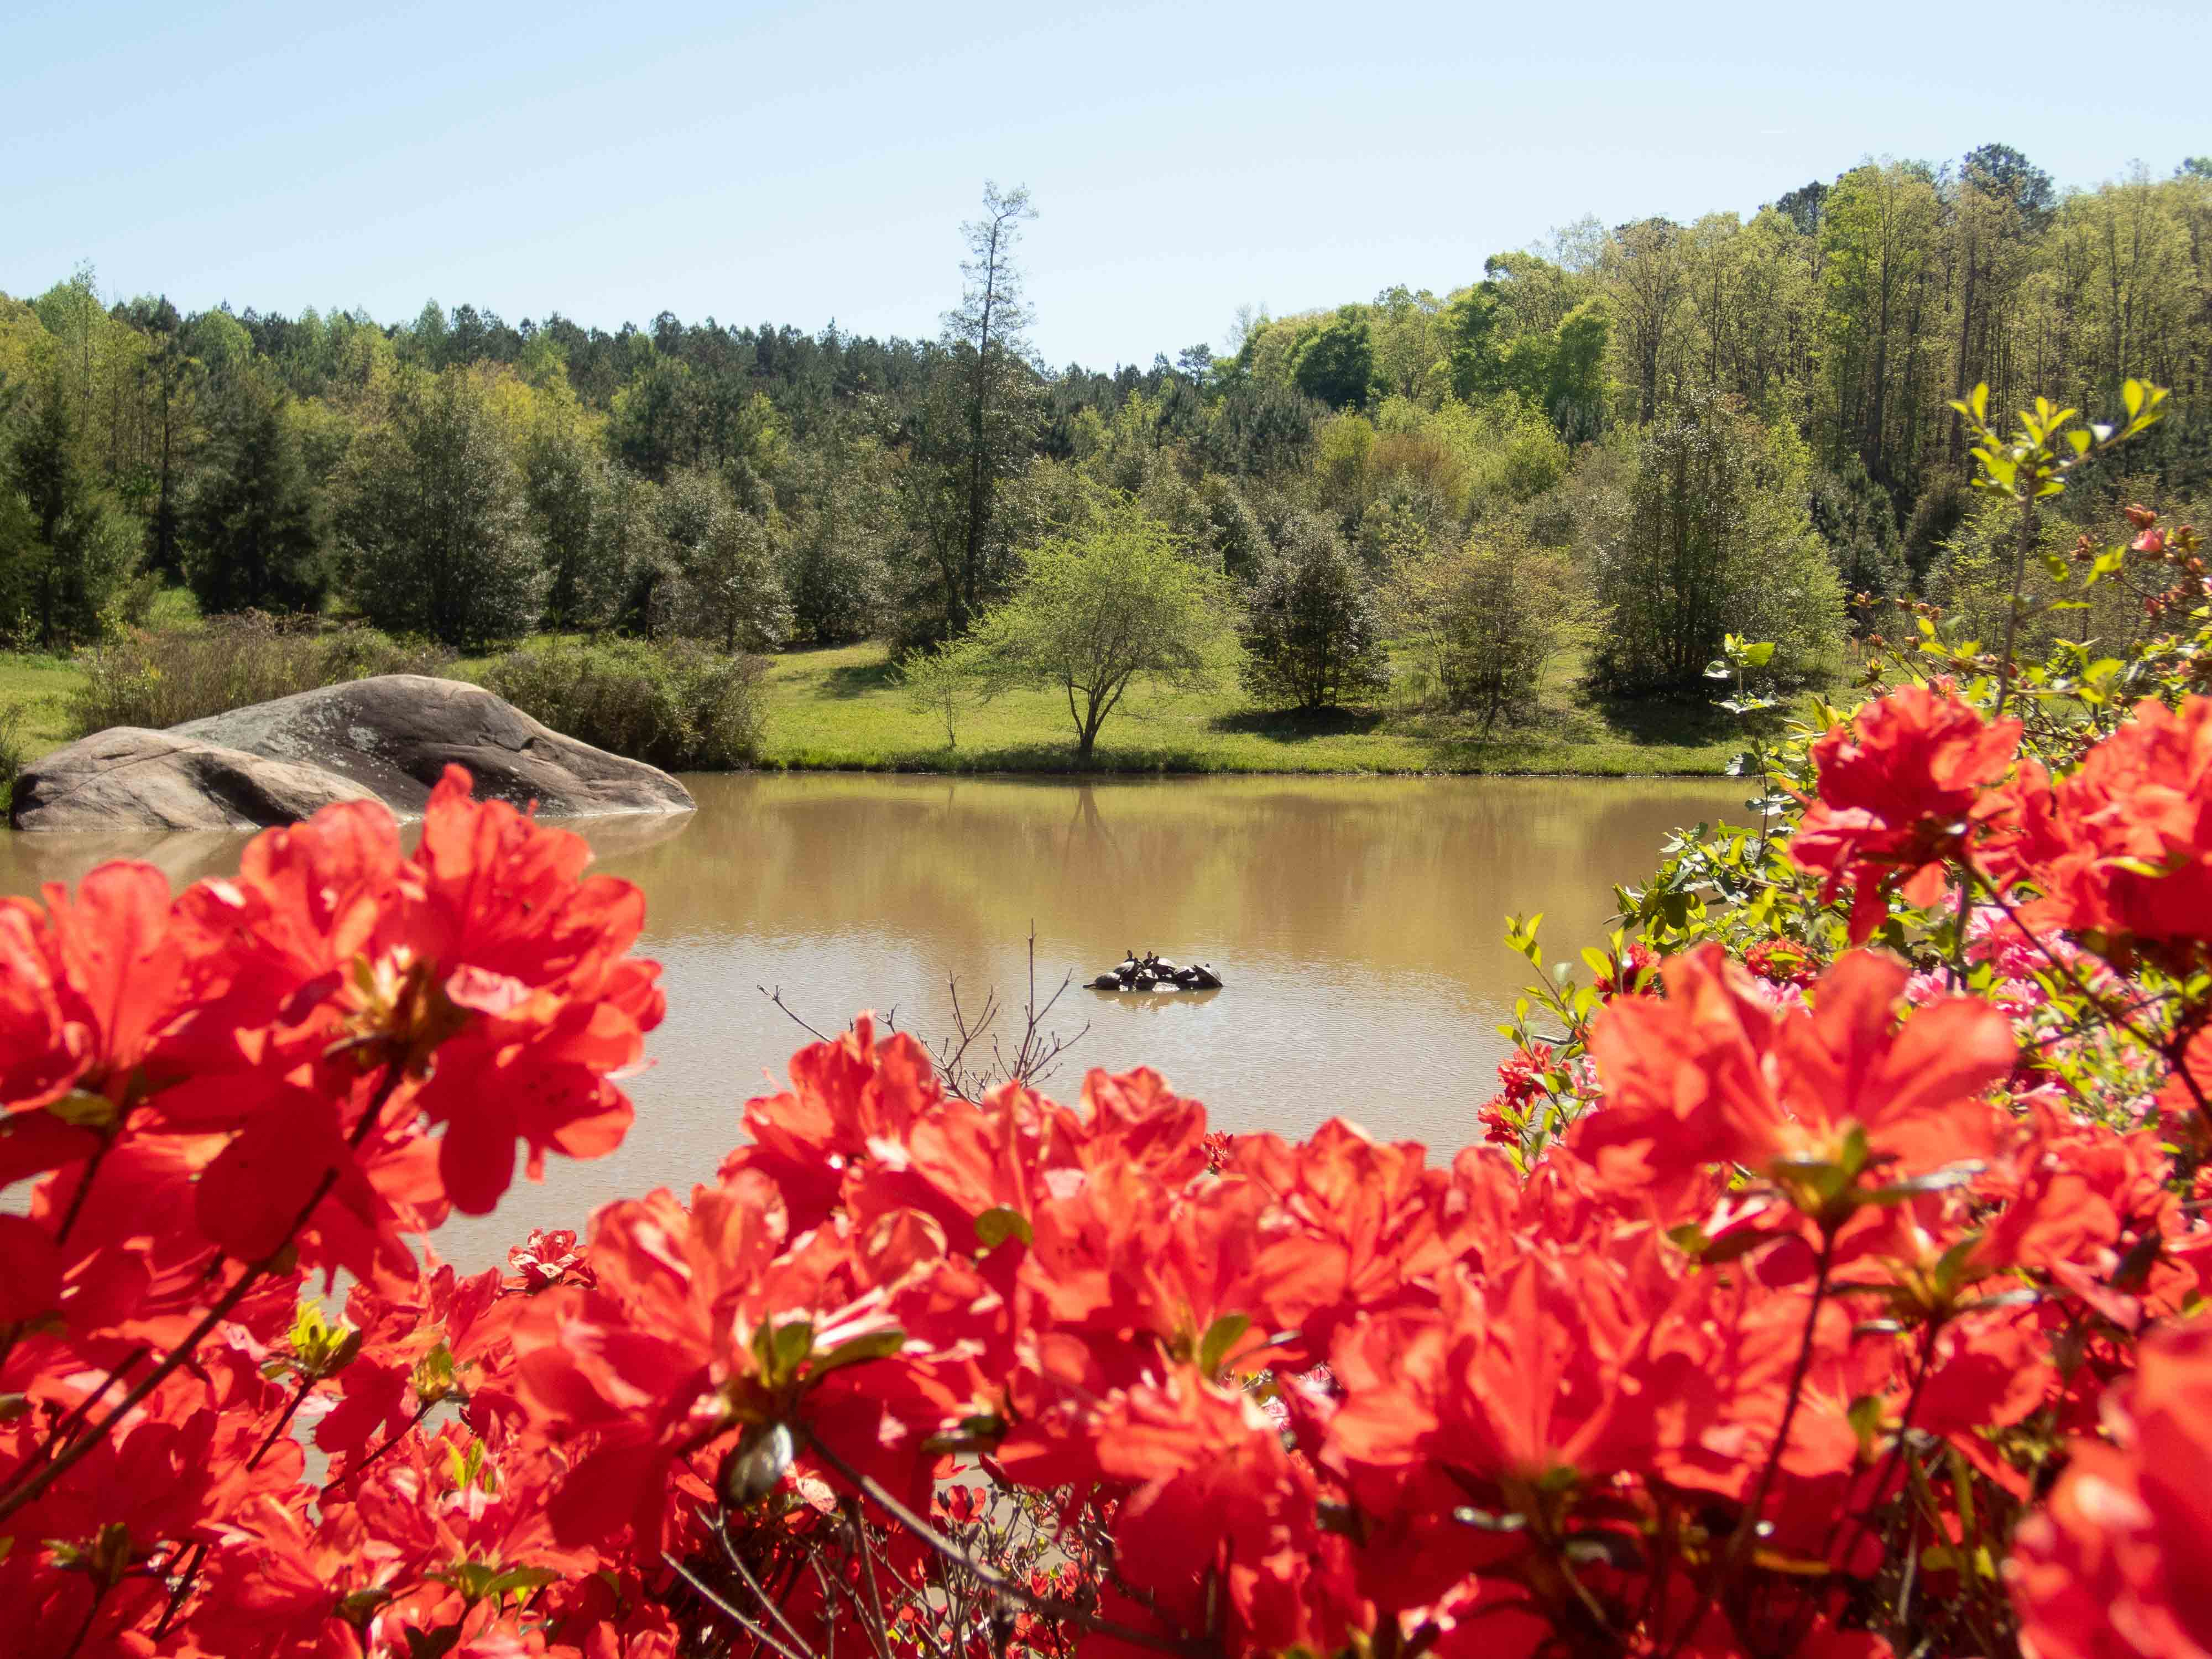 Red azaleas in the foreground, muddy lake with pile of turtles in the background